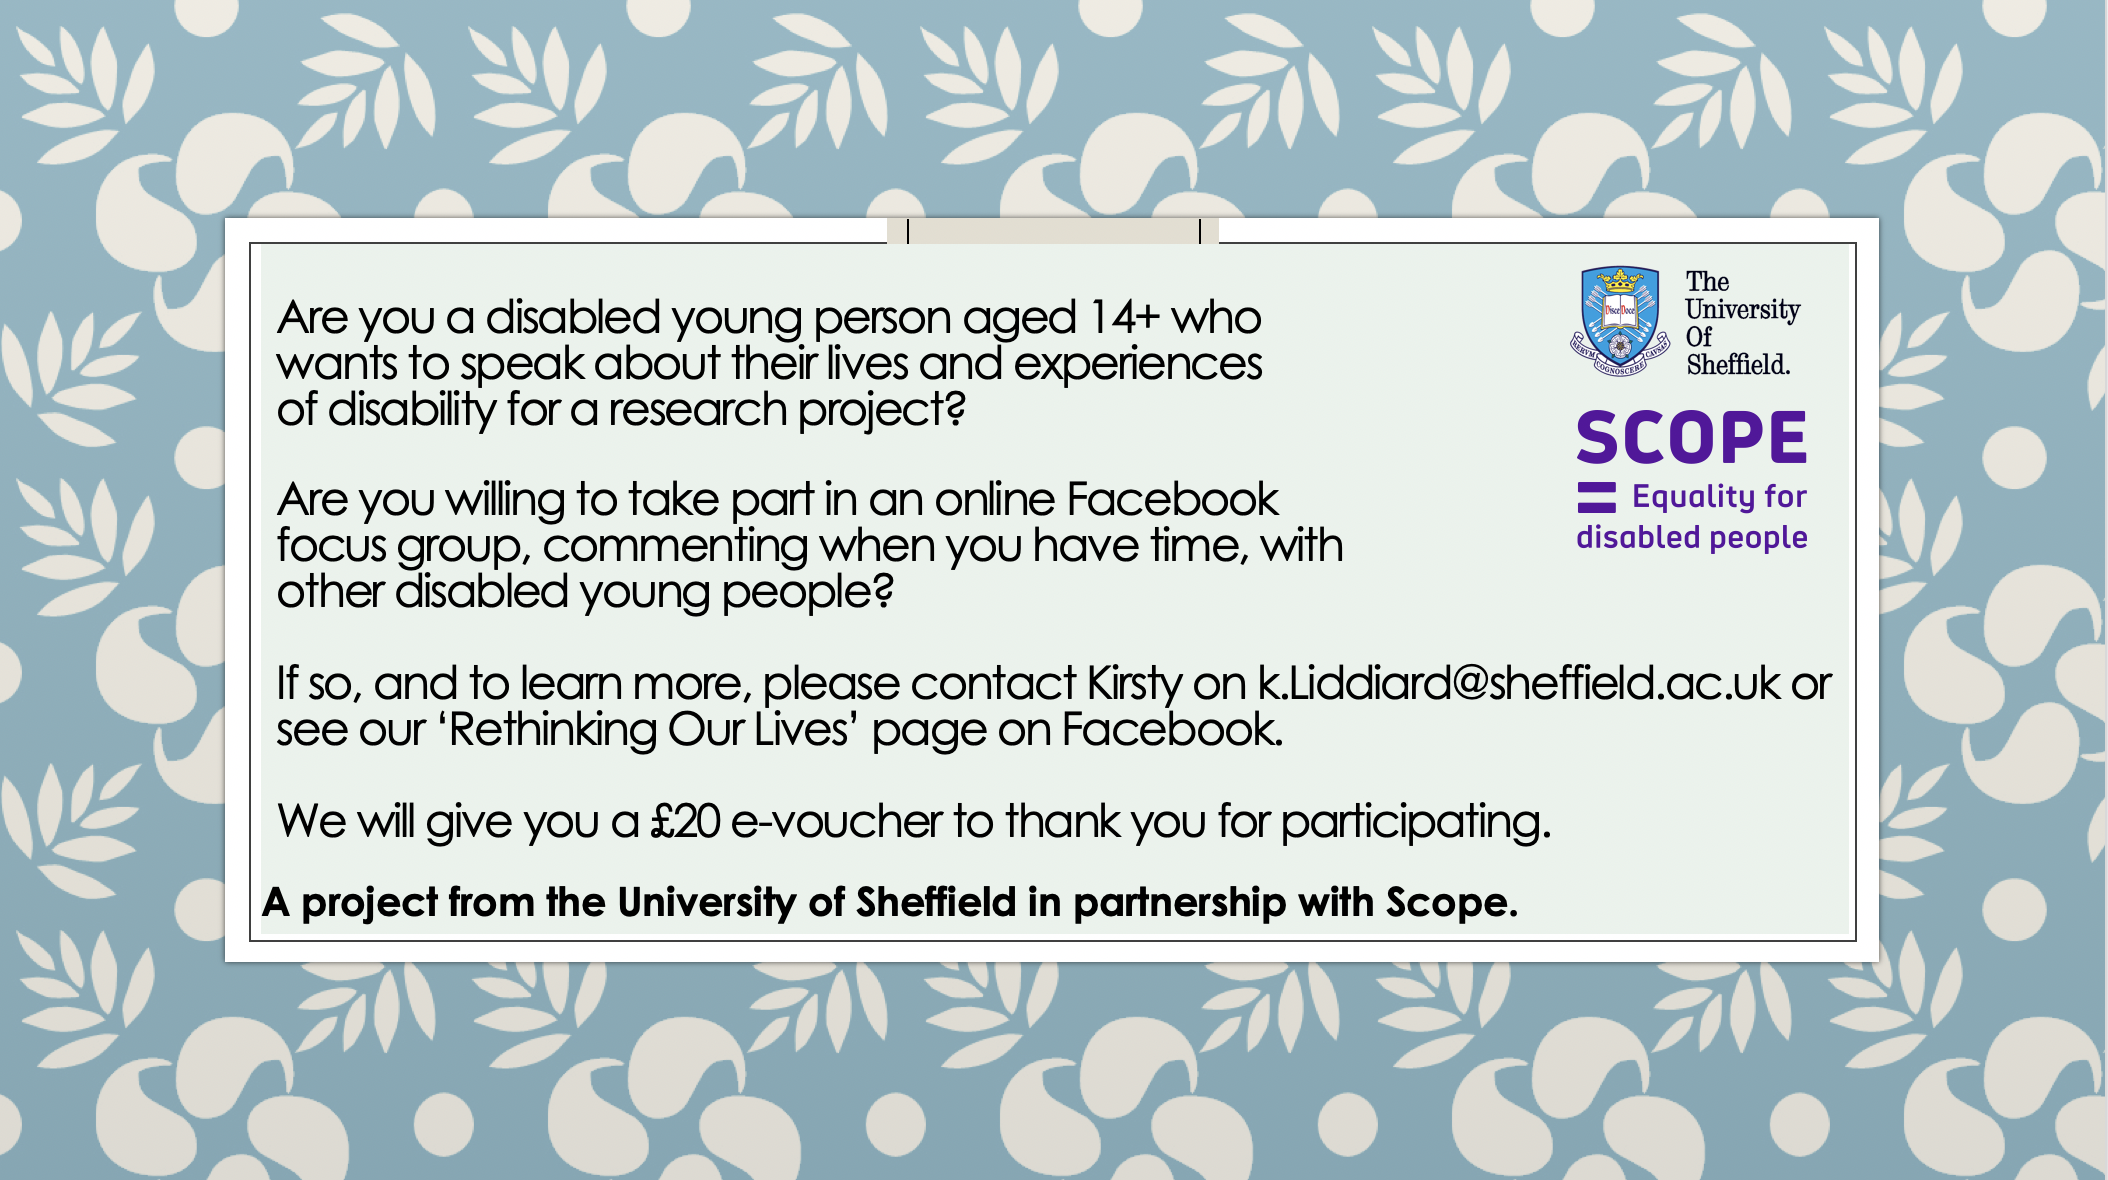 Are you a disabled young person aged 14+ who wants to speak about their lives and experiences of disability for a research project?Are you willing to take part in an online Facebook focus group, commenting when you have time, with other disabled young people?If so, and to learn more, please contact Kirsty on k.Liddiard@sheffield.ac.uk or see our 'Rethinking Our Lives' page on Facebook.We will give you a £20 e-voucher to thank you for participating